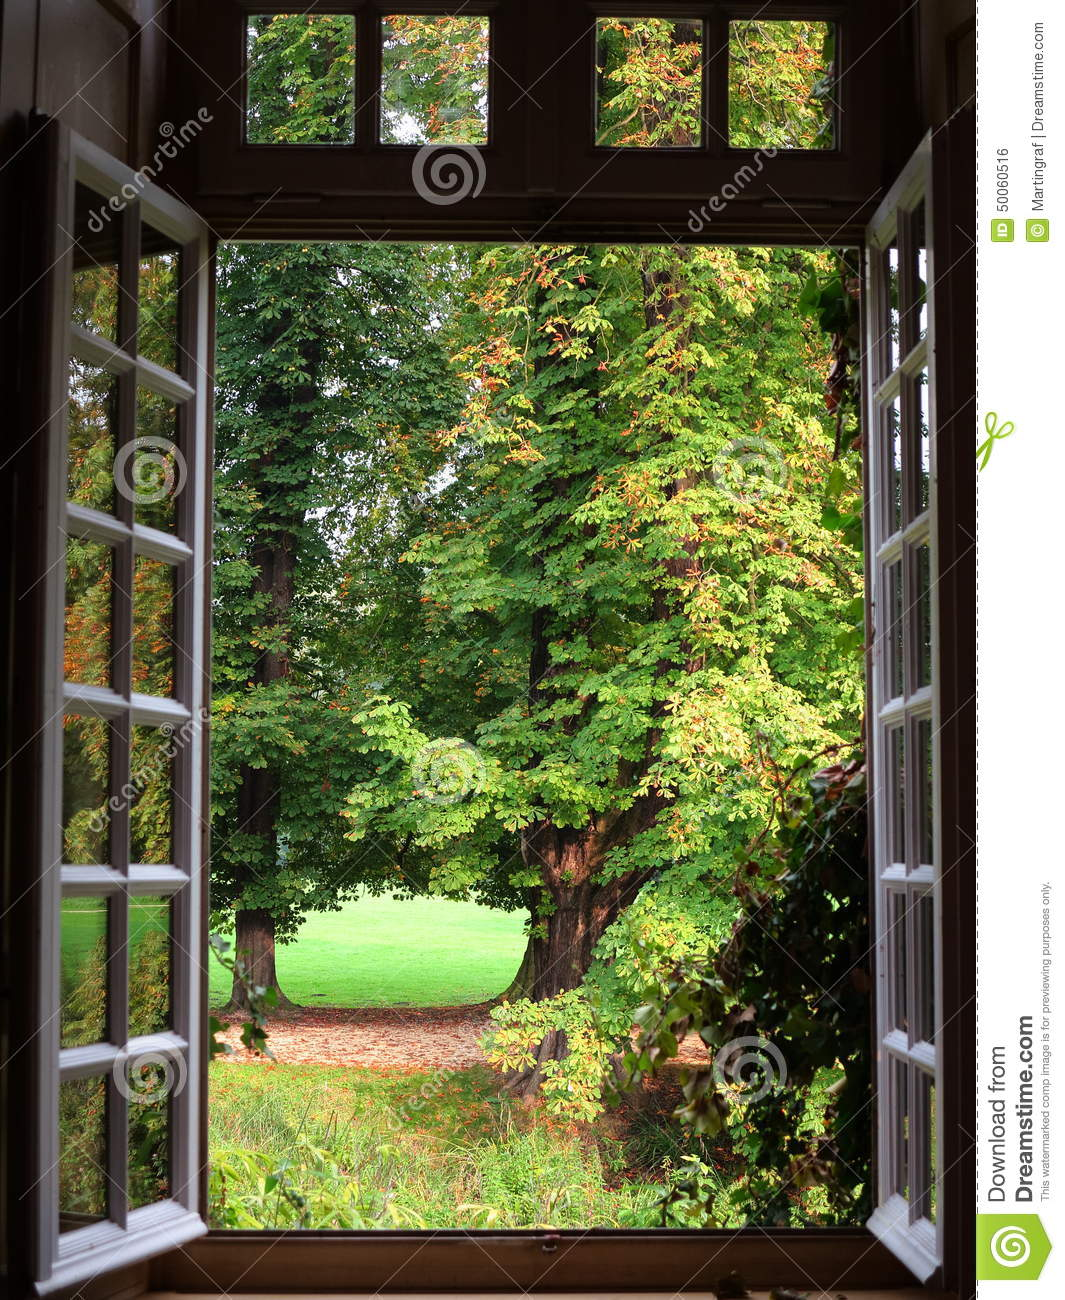 Open window of mansion airing stock photo image of for Par la fenetre ouverte comptine